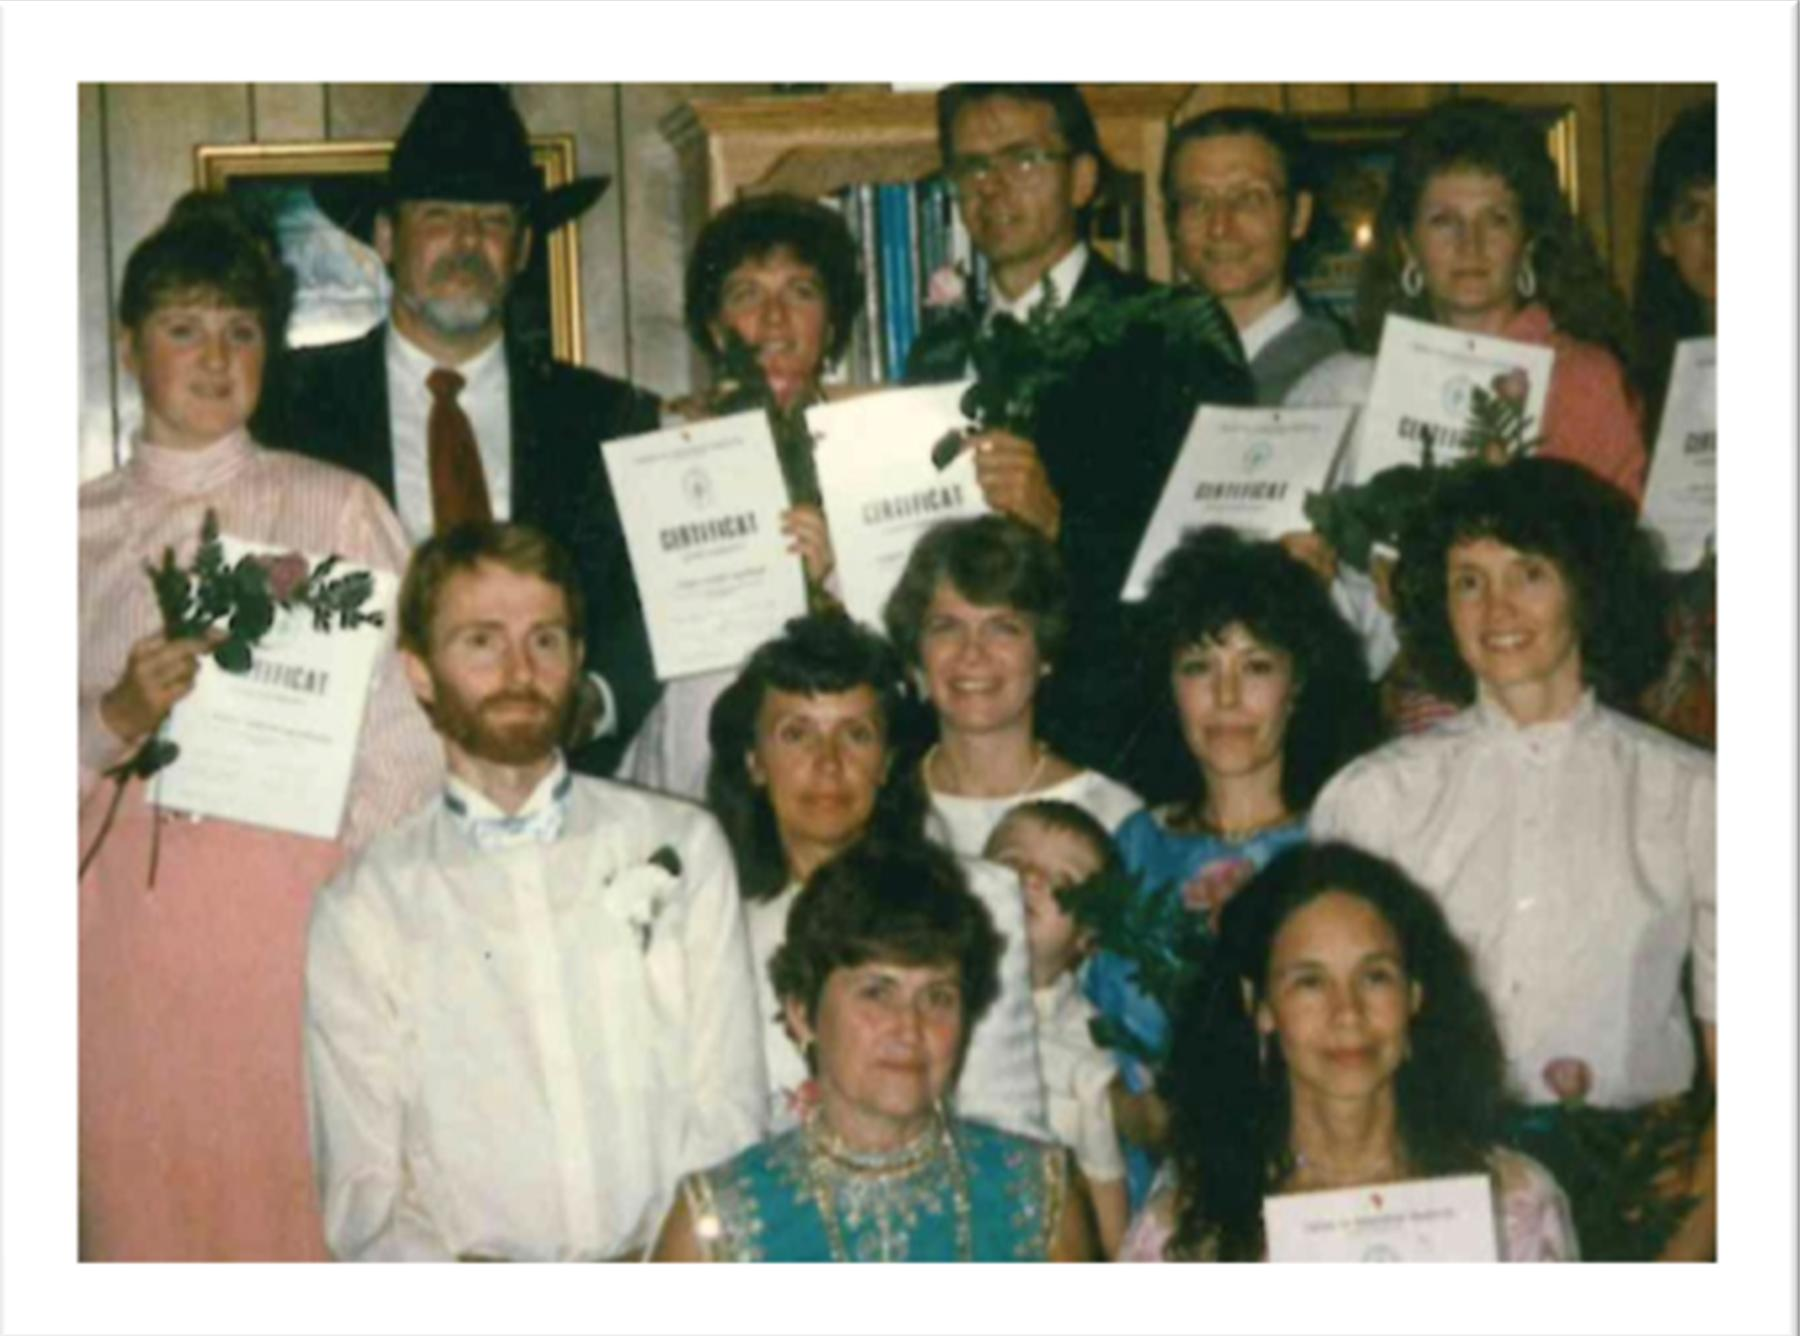 1st Graduating Class in America</br> March 1991</br> Back row: Marita Zachrisson, Charles Ersdal,</br>Tonya Gomman-Swan, Bob Personnette, Jan Johanson,</br>Sherry (last name unknown), Unknown</br> Middle Row: Hans Nordblom, Katri Nordblom,</br>Robin Foline, Joshua Goman (Tonya's son) Mary Jo Morgan,</br>Julie Holdregger</br> Front row: Inbrit Stein, Bernadette Jagiello